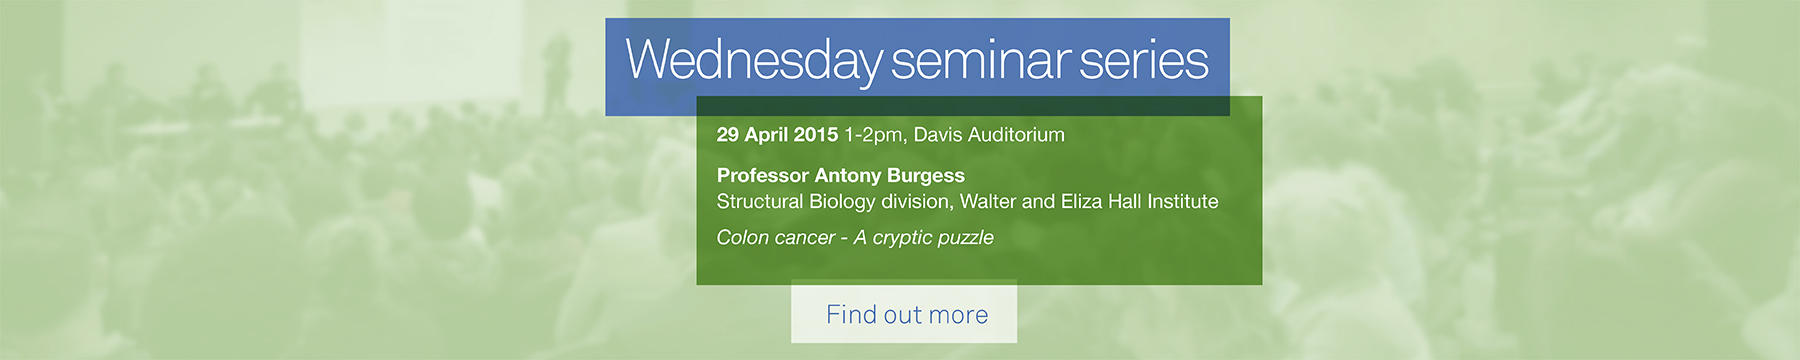 Wednesday scientific seminar series